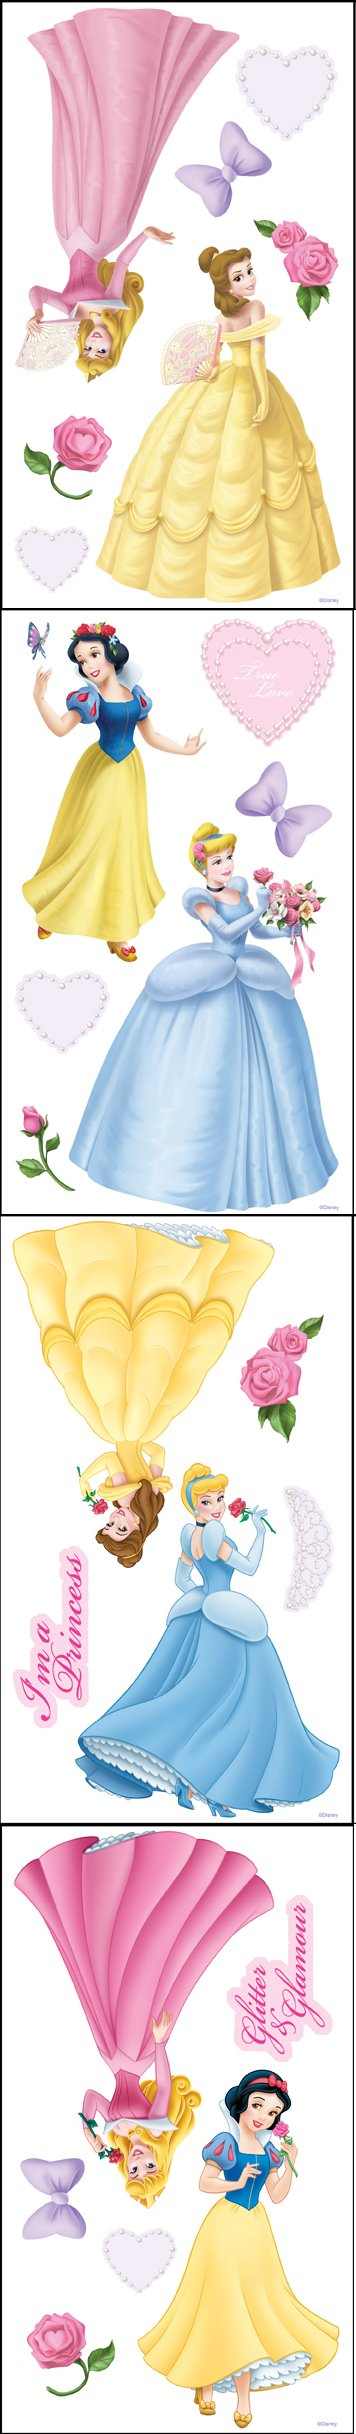 Disney Princess and Pearls Room Appliques - Kids Wall Decor Store